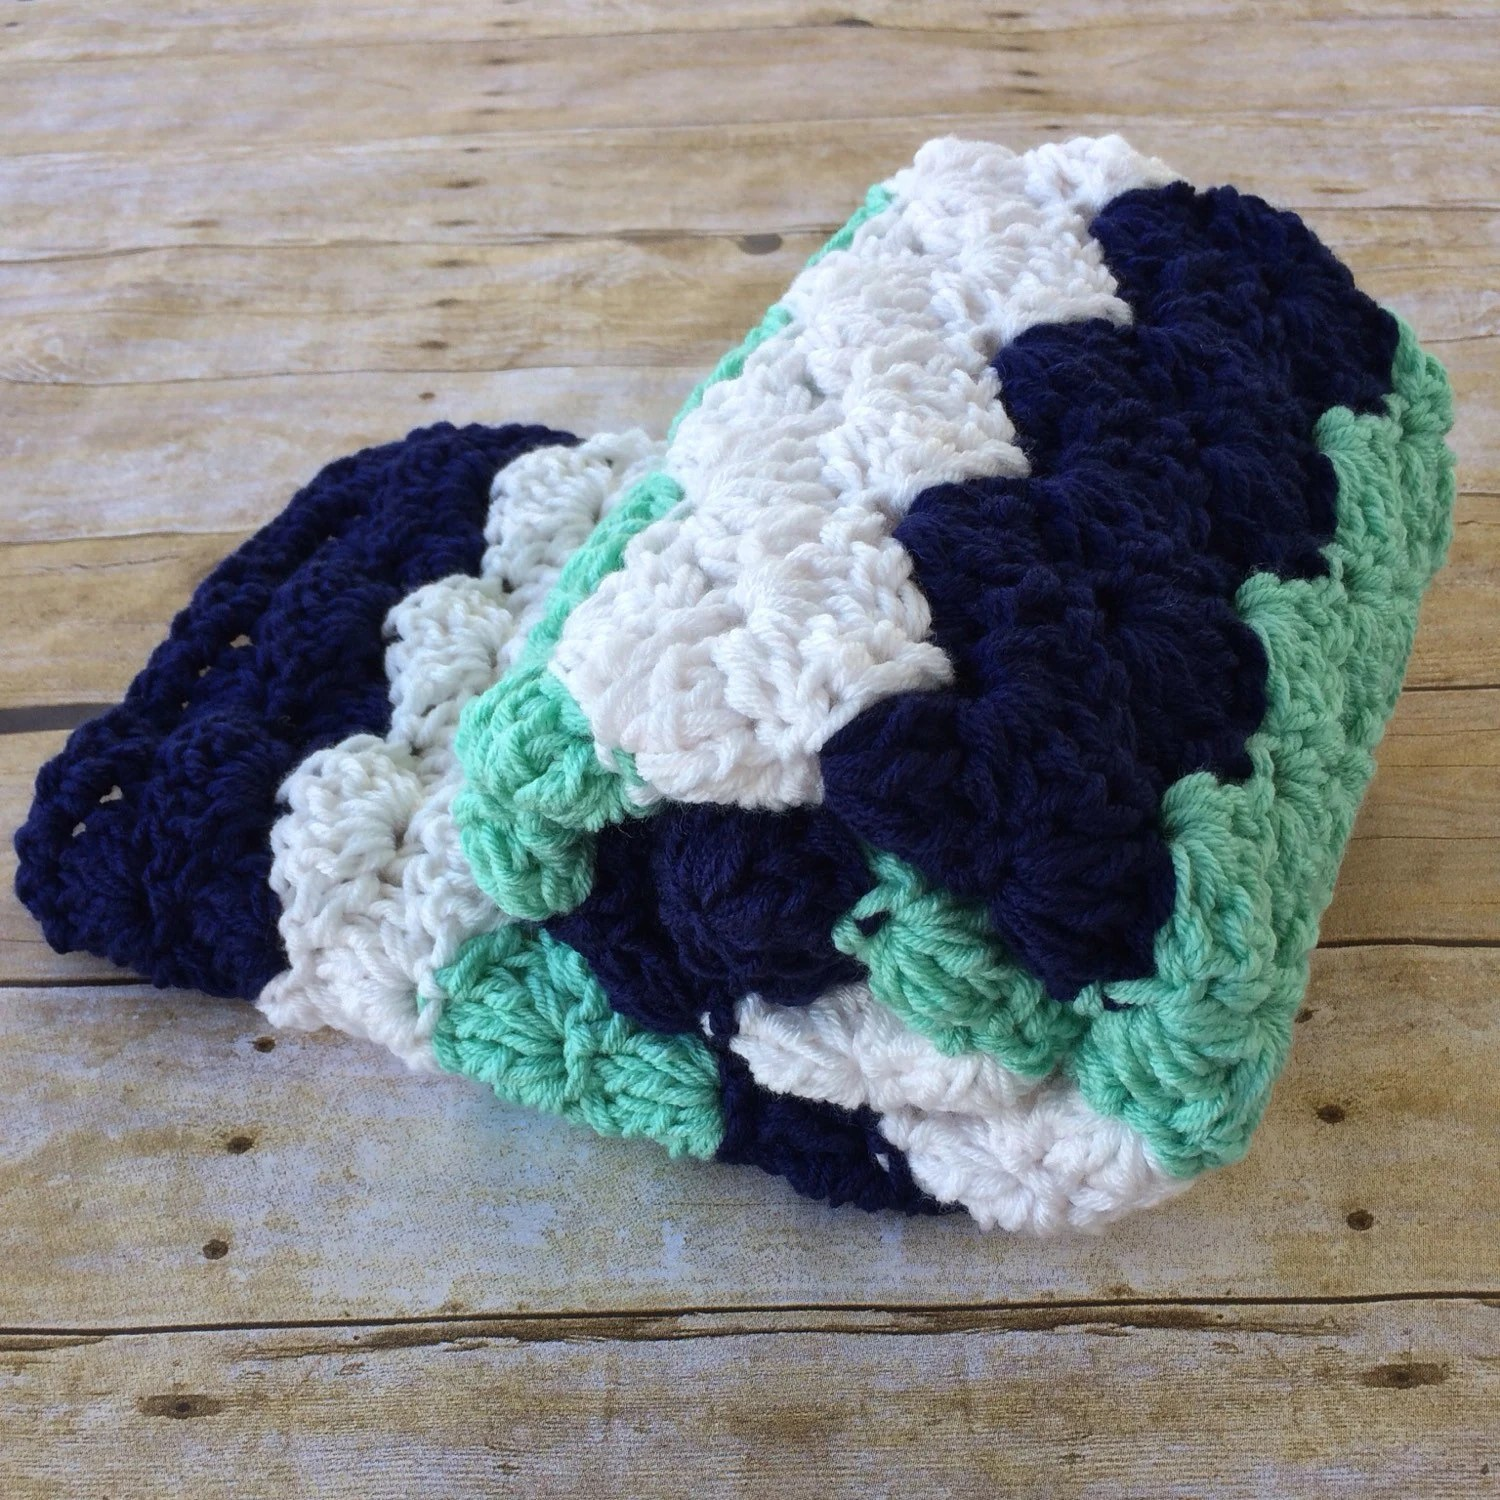 HANDMADE CROCHET BABY BLANKETS AND THROWS By DesignbyAW On